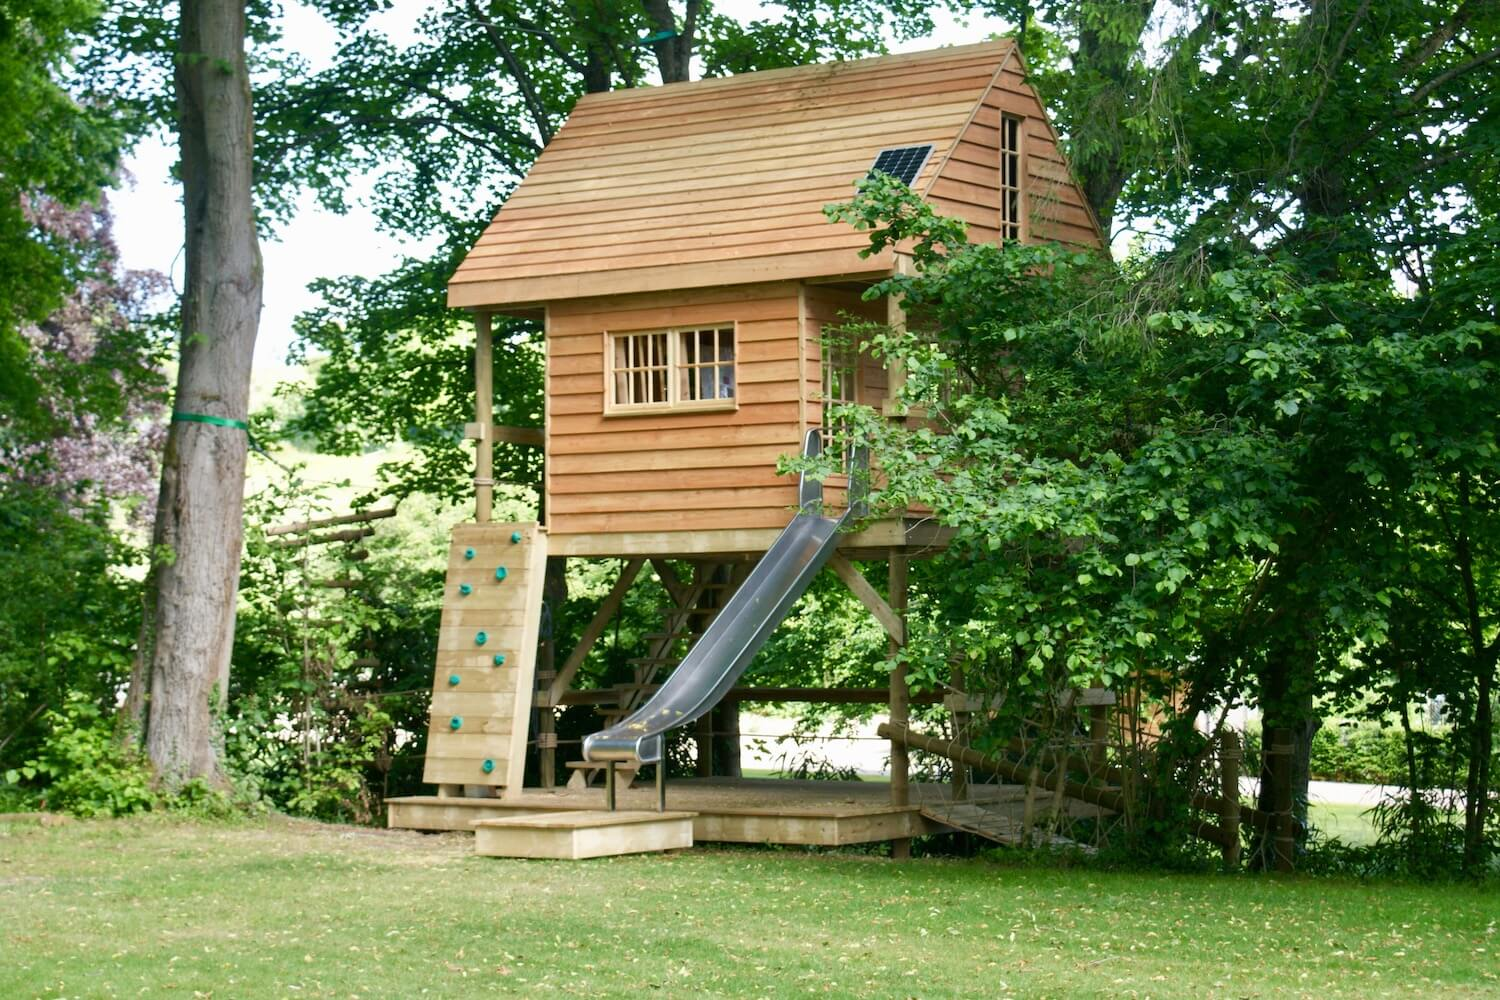 'Living' treehouse